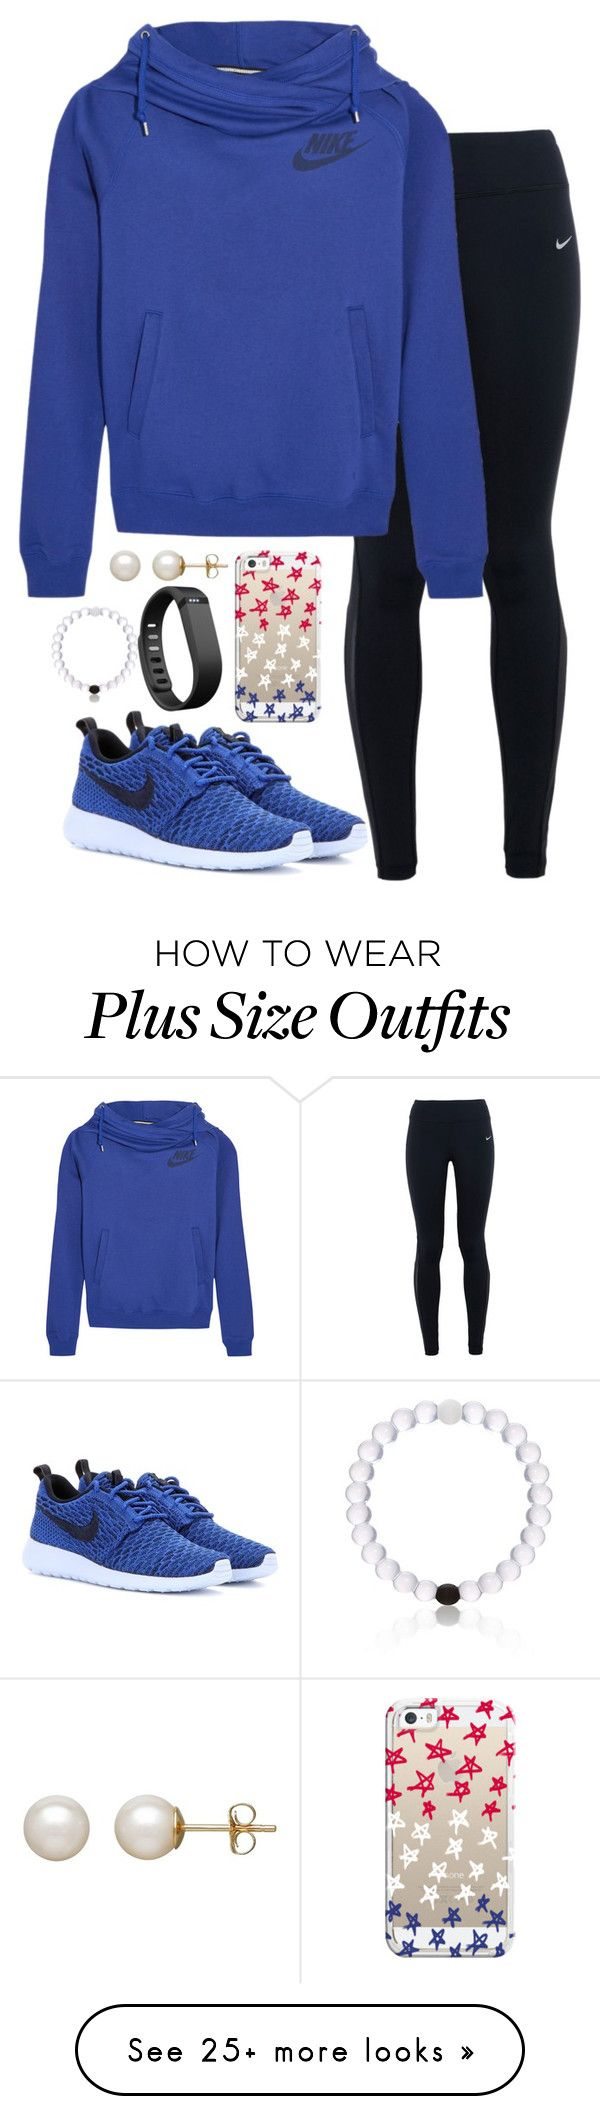 outfit #5, sports event. this outfit is great because it's sporty and it keeps you warm. it's not too much.